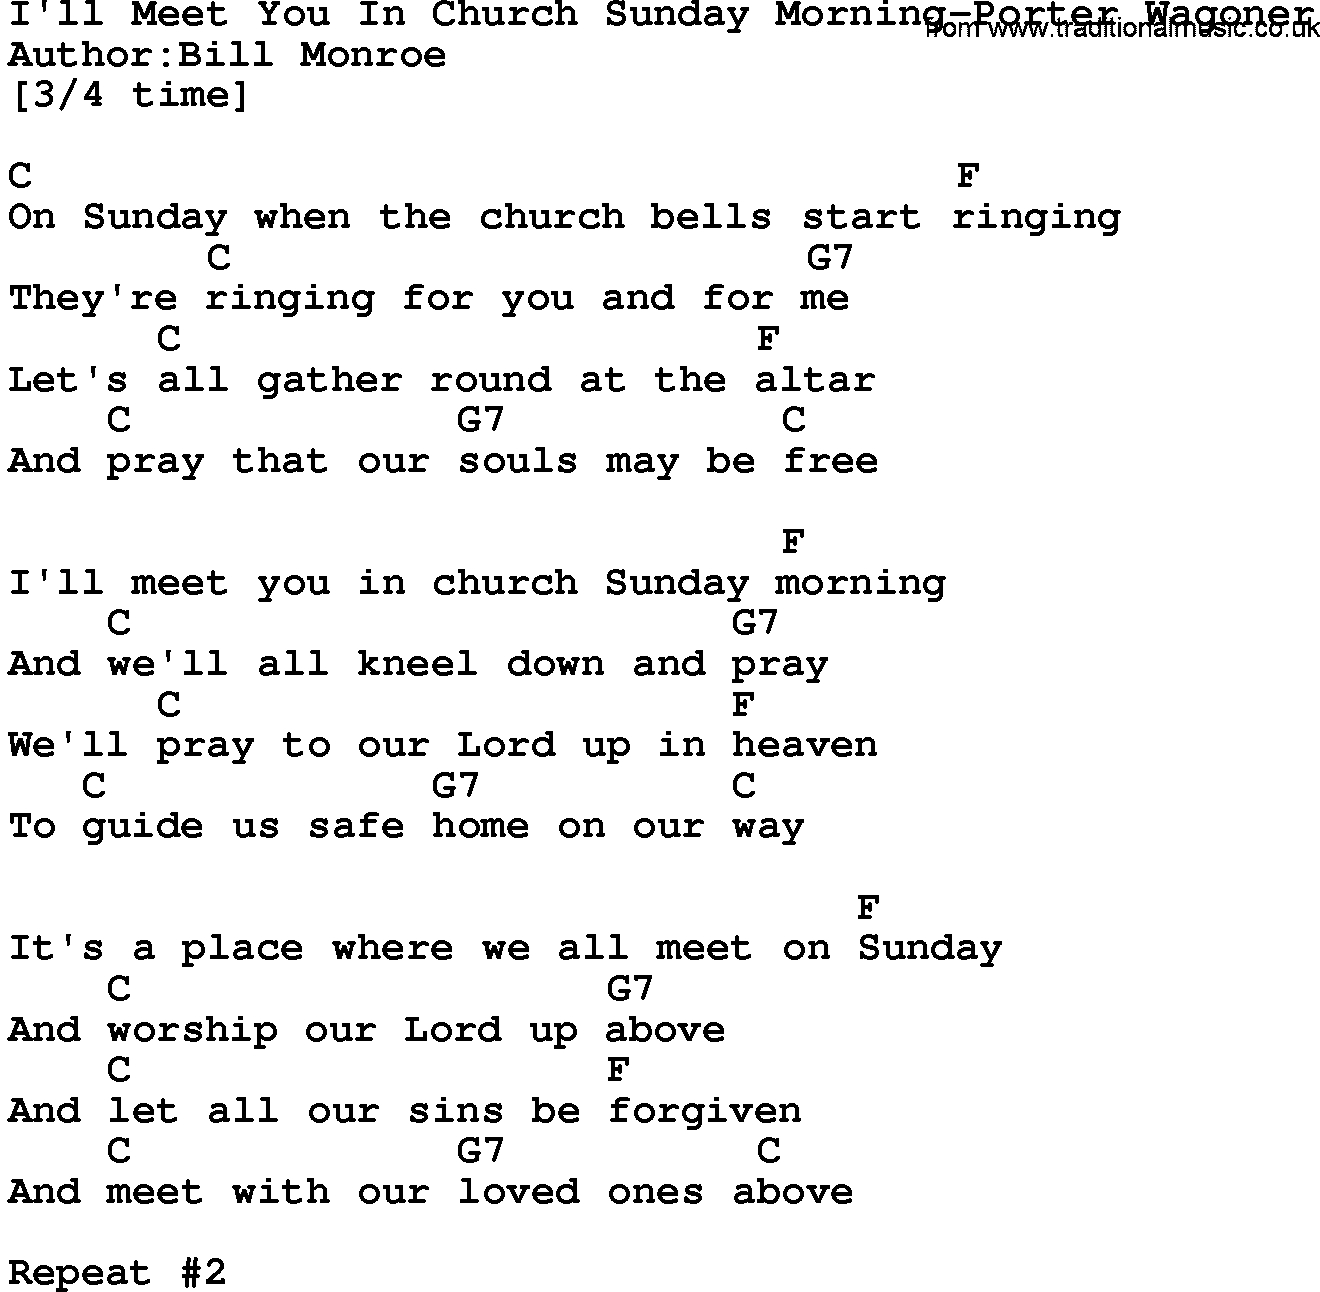 Sunday Morning Chords Country Musicill Meet You In Church Sunday Morning Porter Wagoner